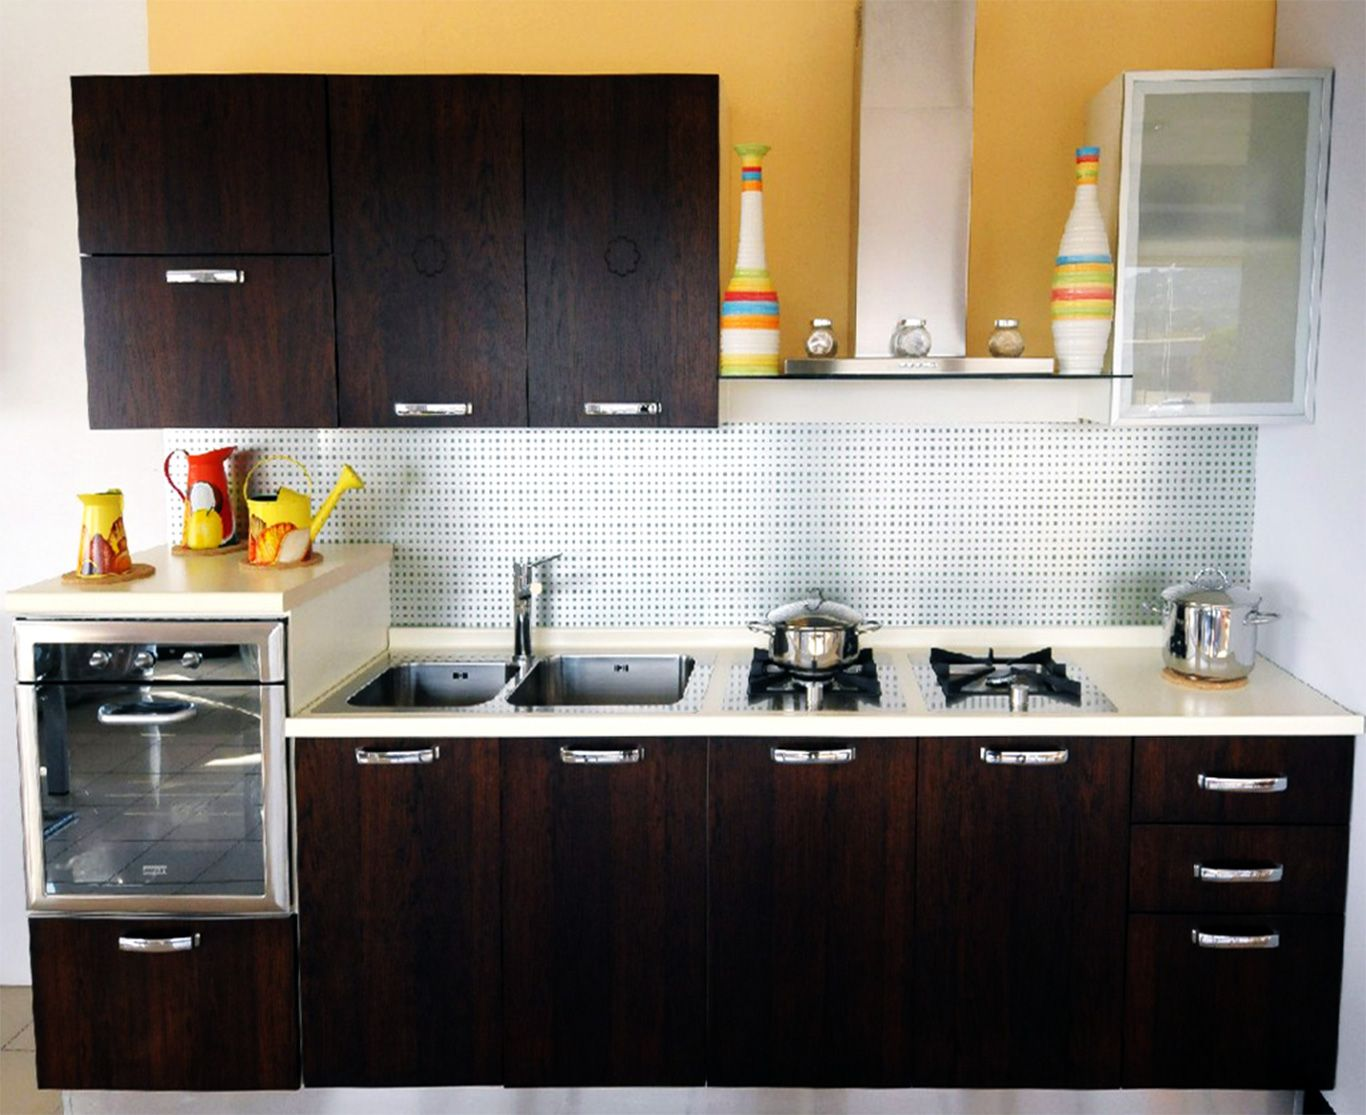 Pune kitchens is the modular kitchen shutters supplier for Basic small kitchen designs